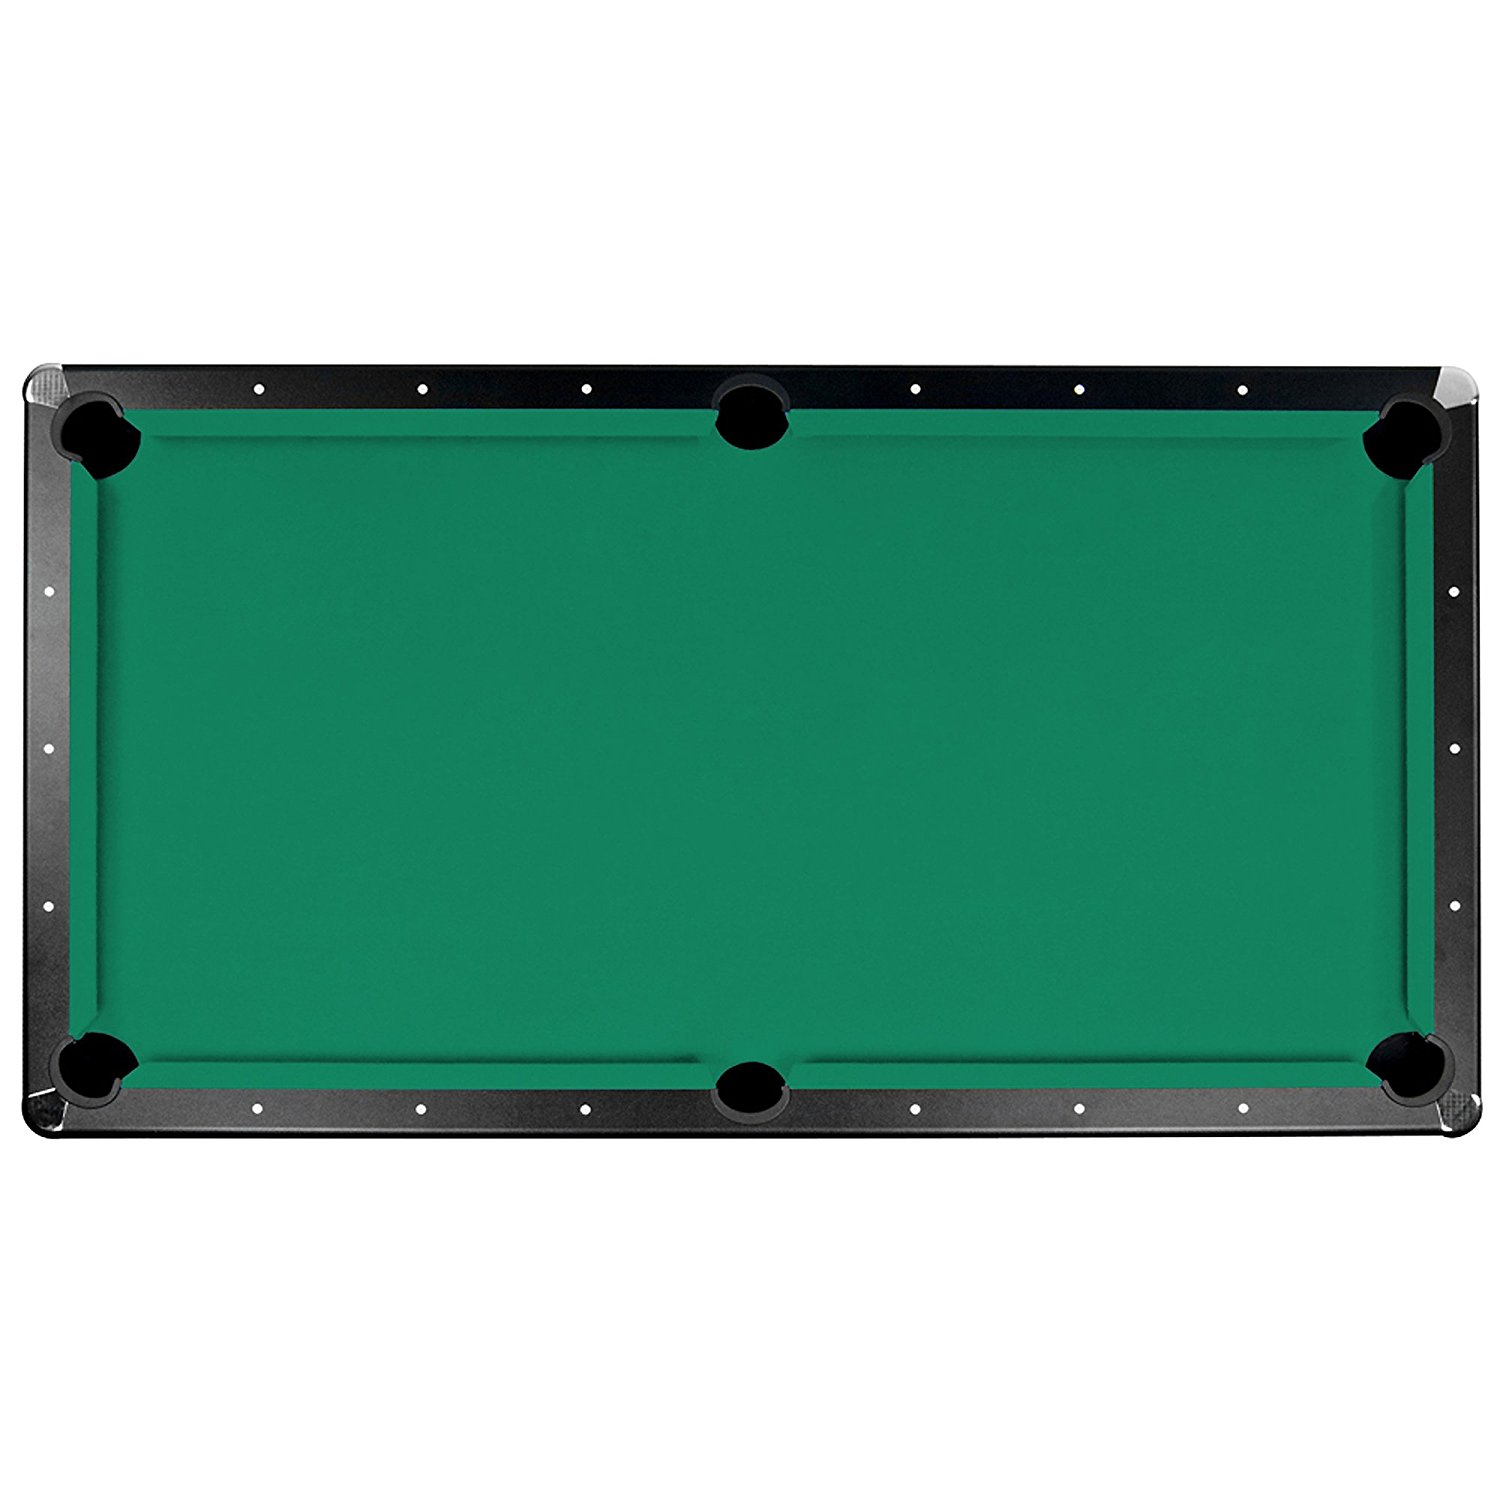 Replaceable Pool Table Felt